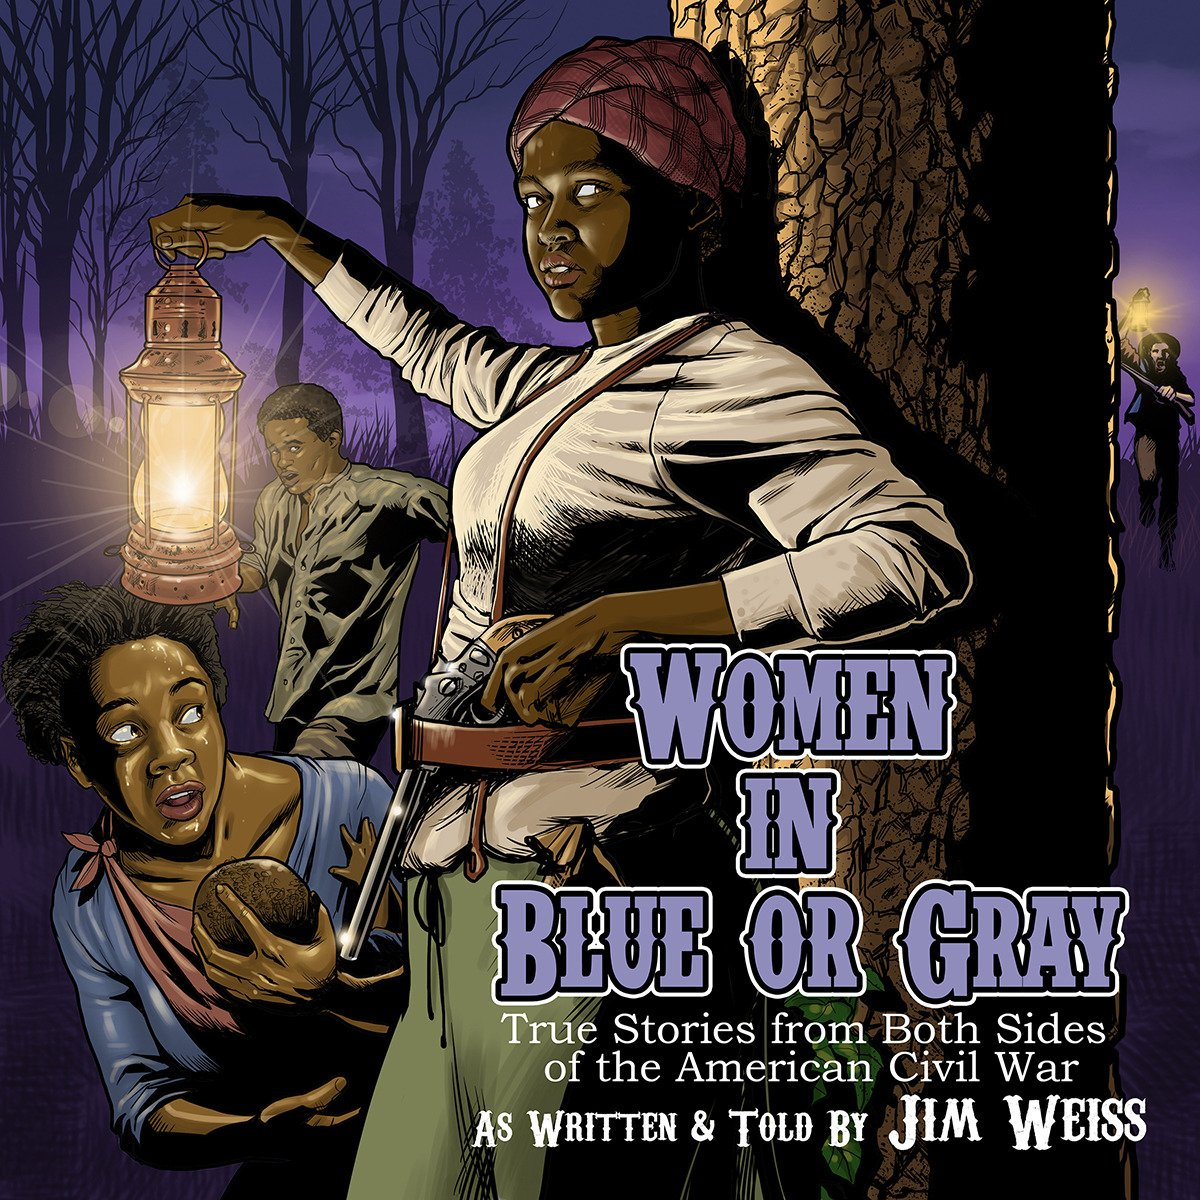 Women in Blue or Gray: True Stories from Both Sides of the American Civil War